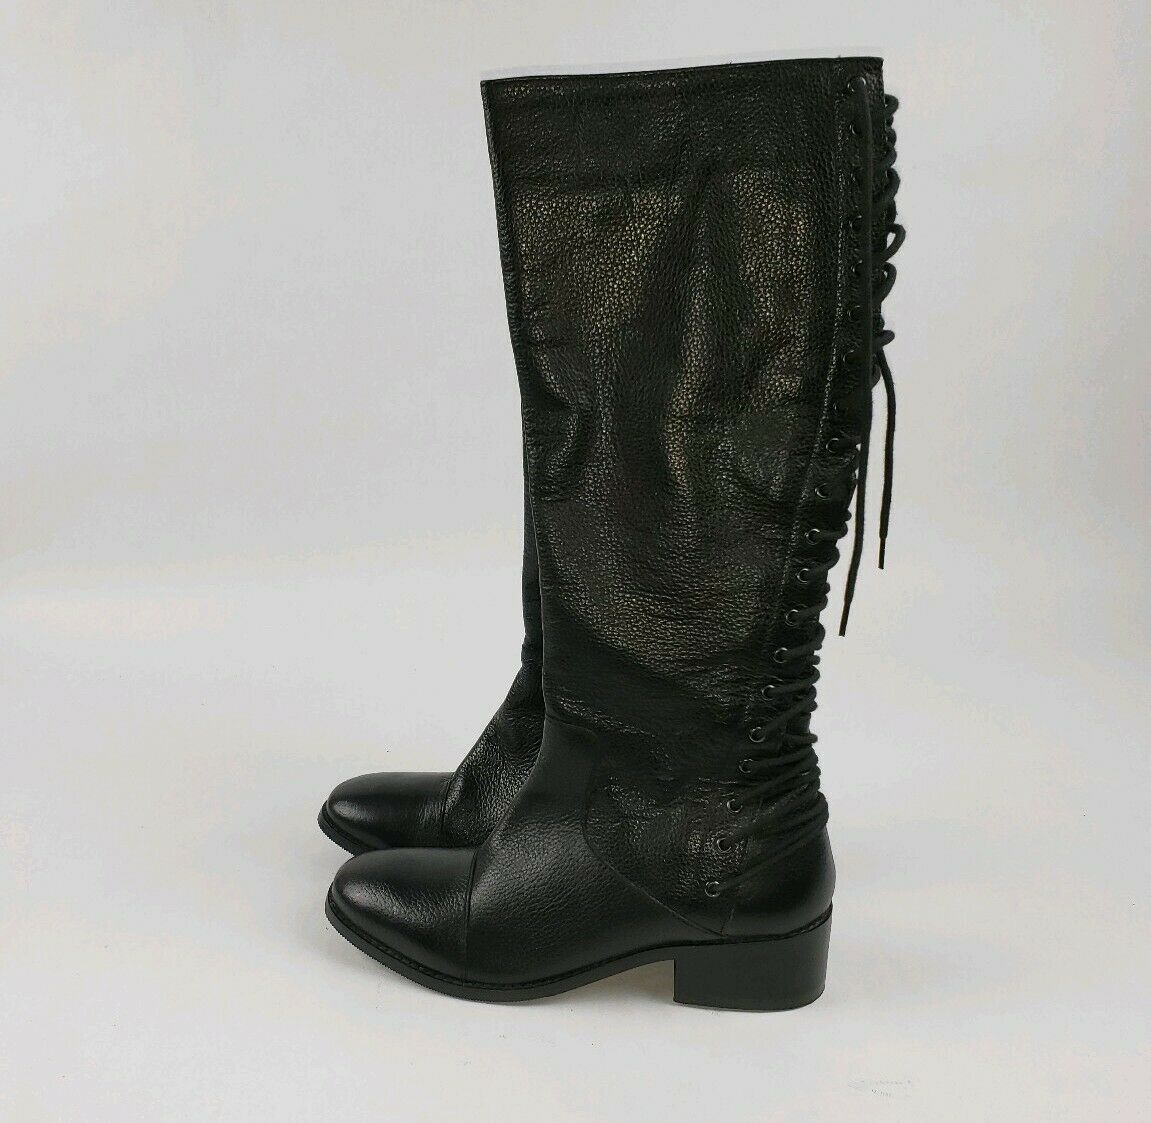 MADE IN  INDIA  BLACK  LEATHER UPPER  WOMEN'S  BOOTS SIZE 7  REAR BACK LACE